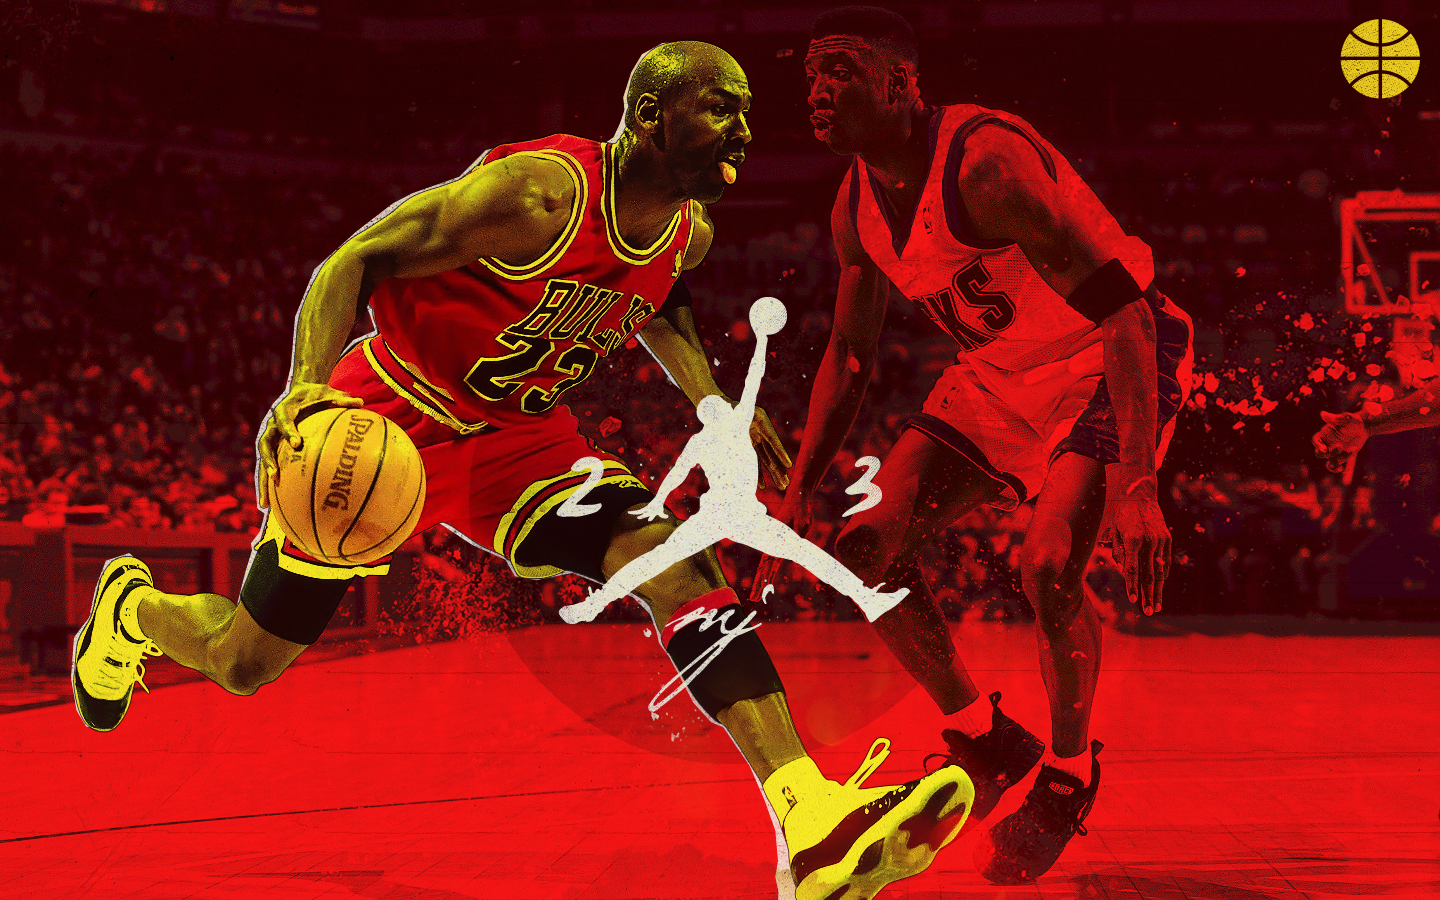 Free Download Michael Jordan 23 By W4rrior 1440x900 For